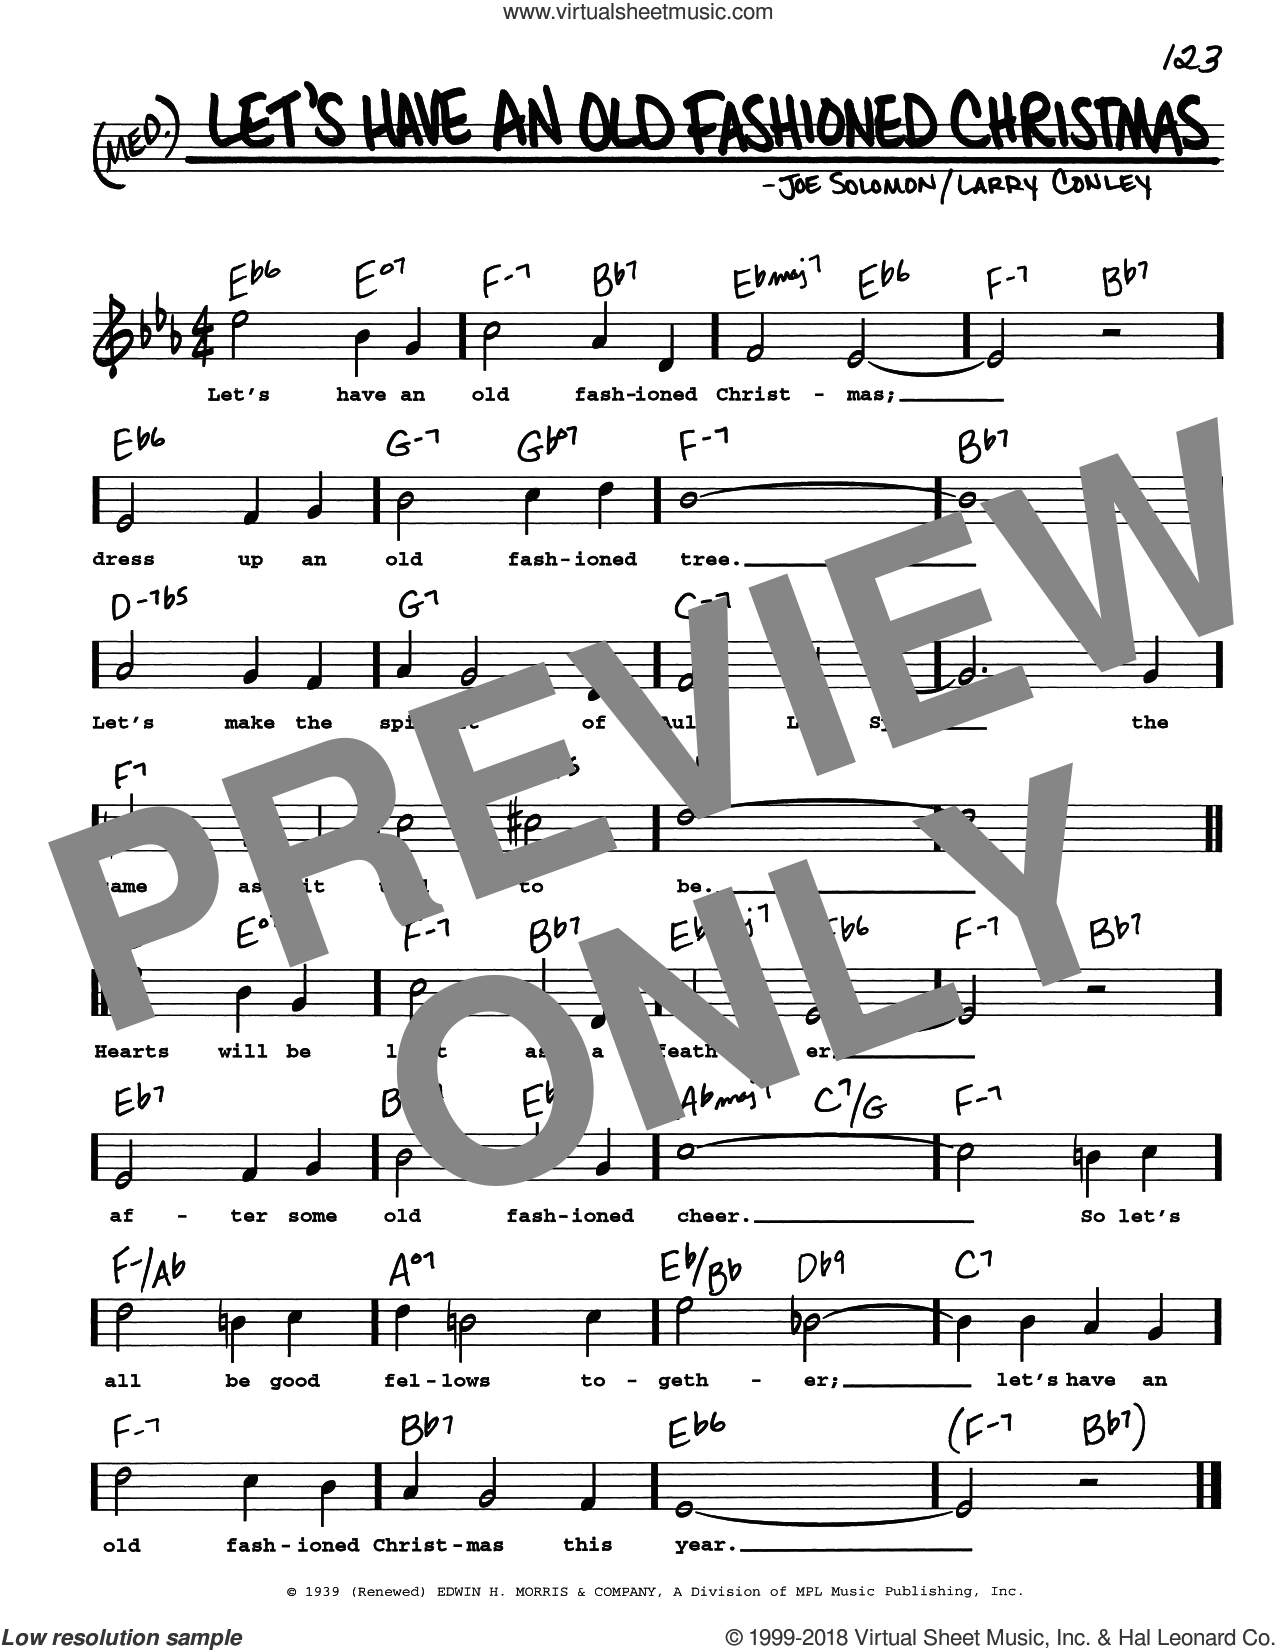 Let's Have An Old Fashioned Christmas sheet music for voice and other instruments (real book with lyrics) by Larry Conley and Joe Solomon, intermediate skill level